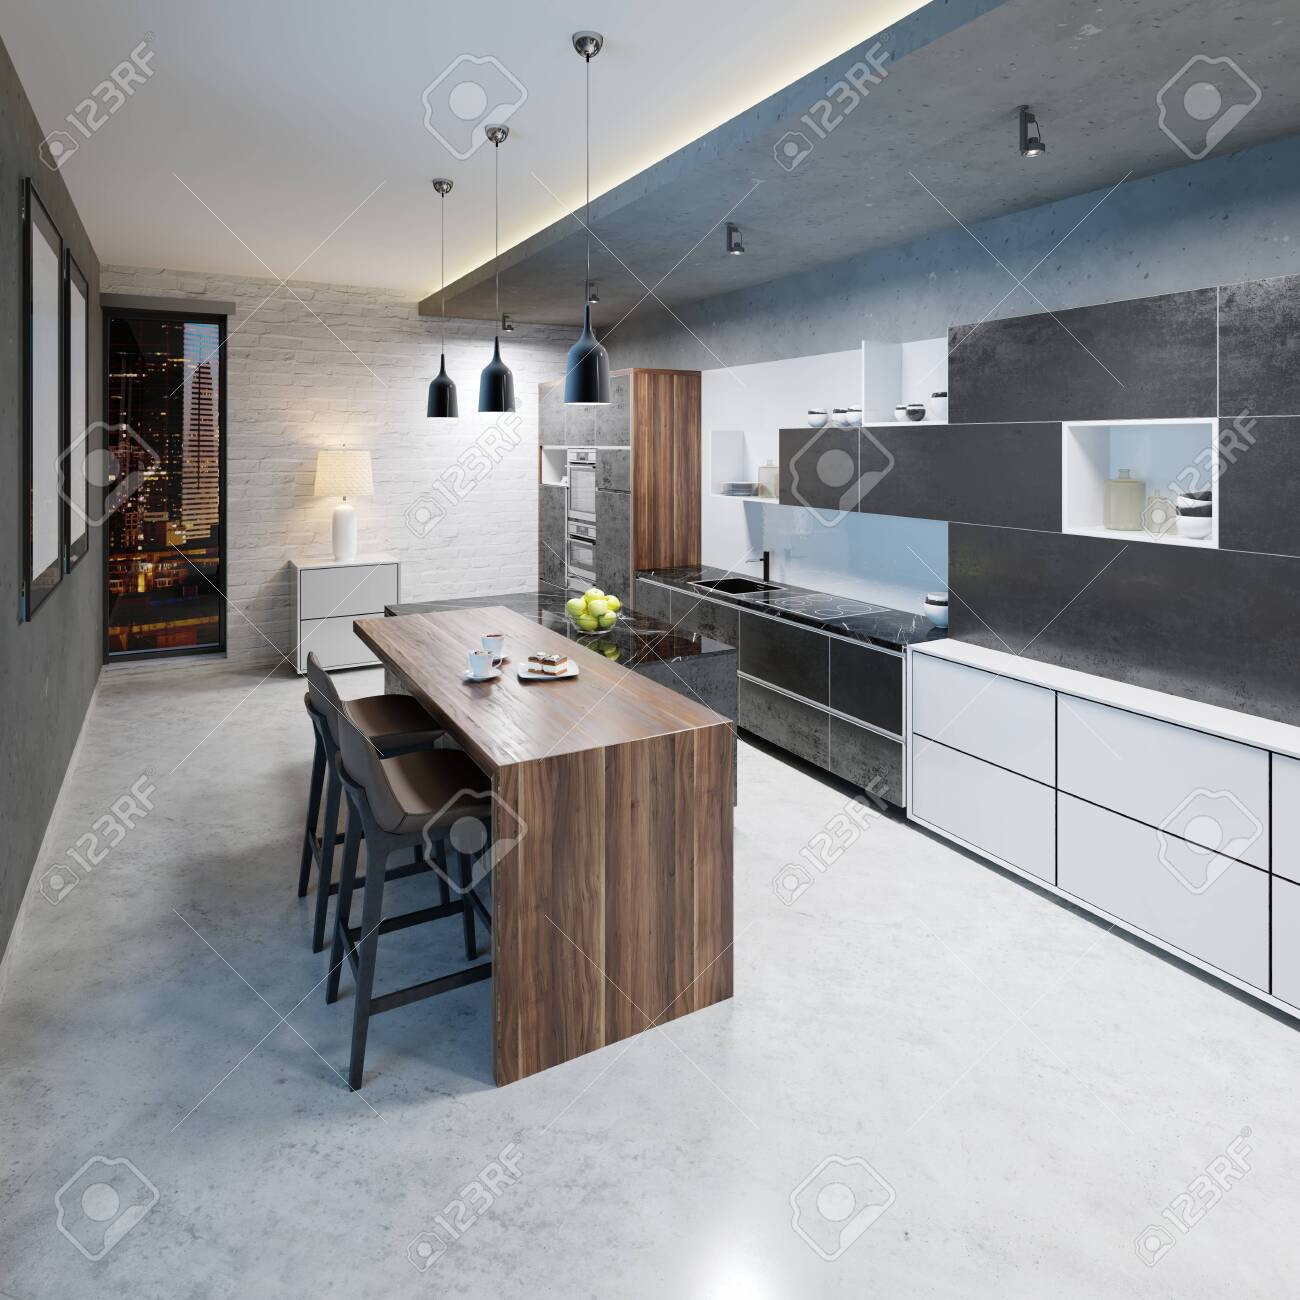 Modern Kitchen Design With A Long Center Island And Bar Table Stock Photo Picture And Royalty Free Image Image 113849751